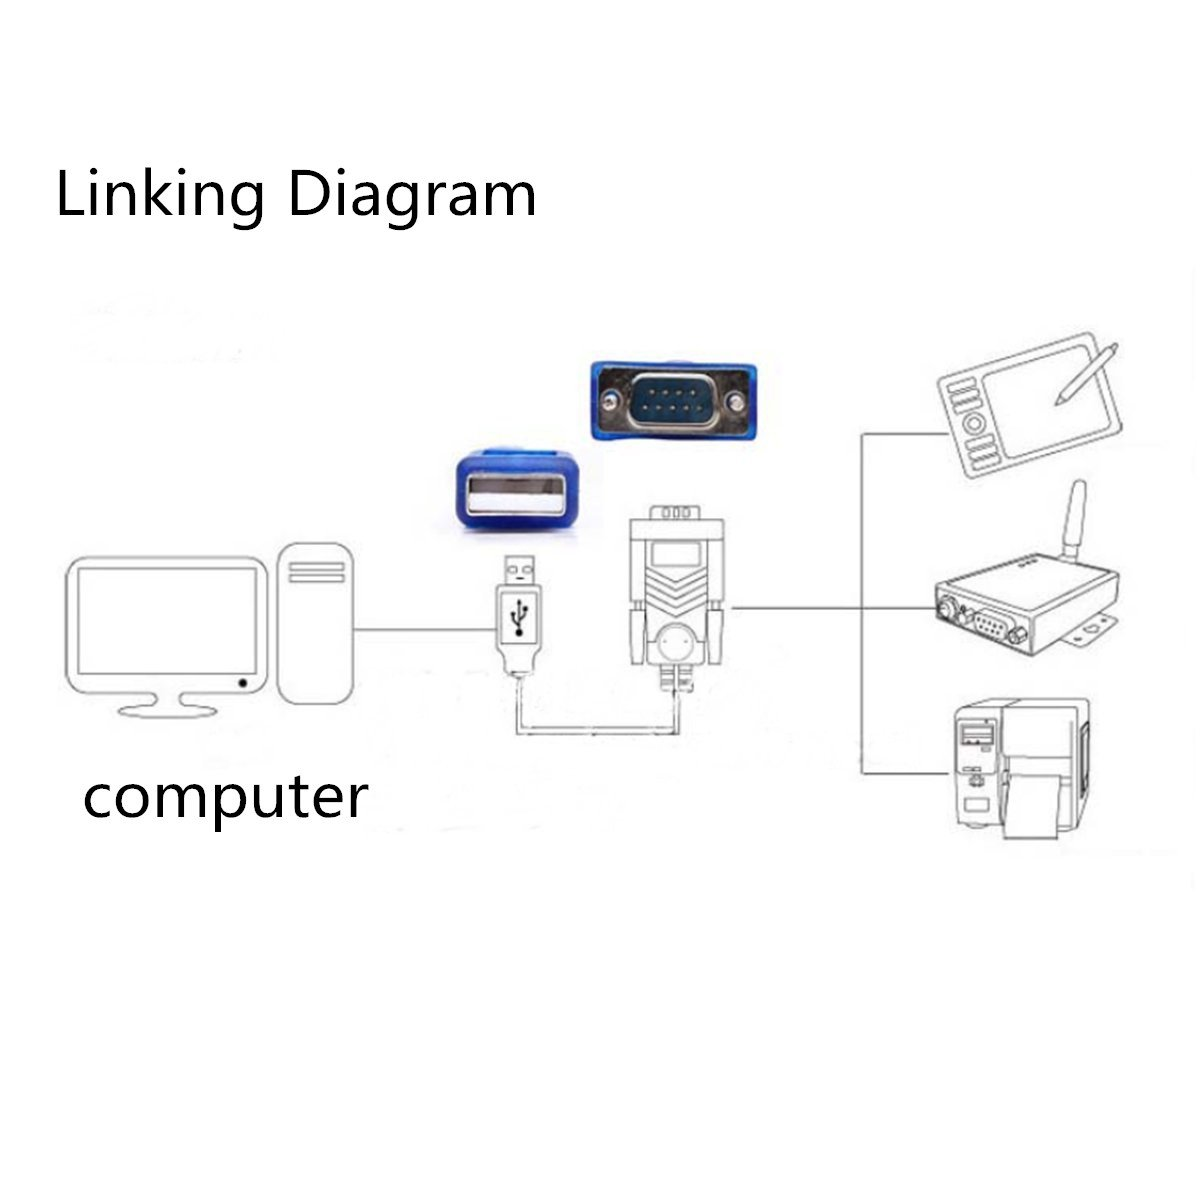 USB To RS232 Serial Port 9 Pin DB9 Cable Serial COM Port Adapter Convertor With Female Adapter Supports For Windows 8 No CD